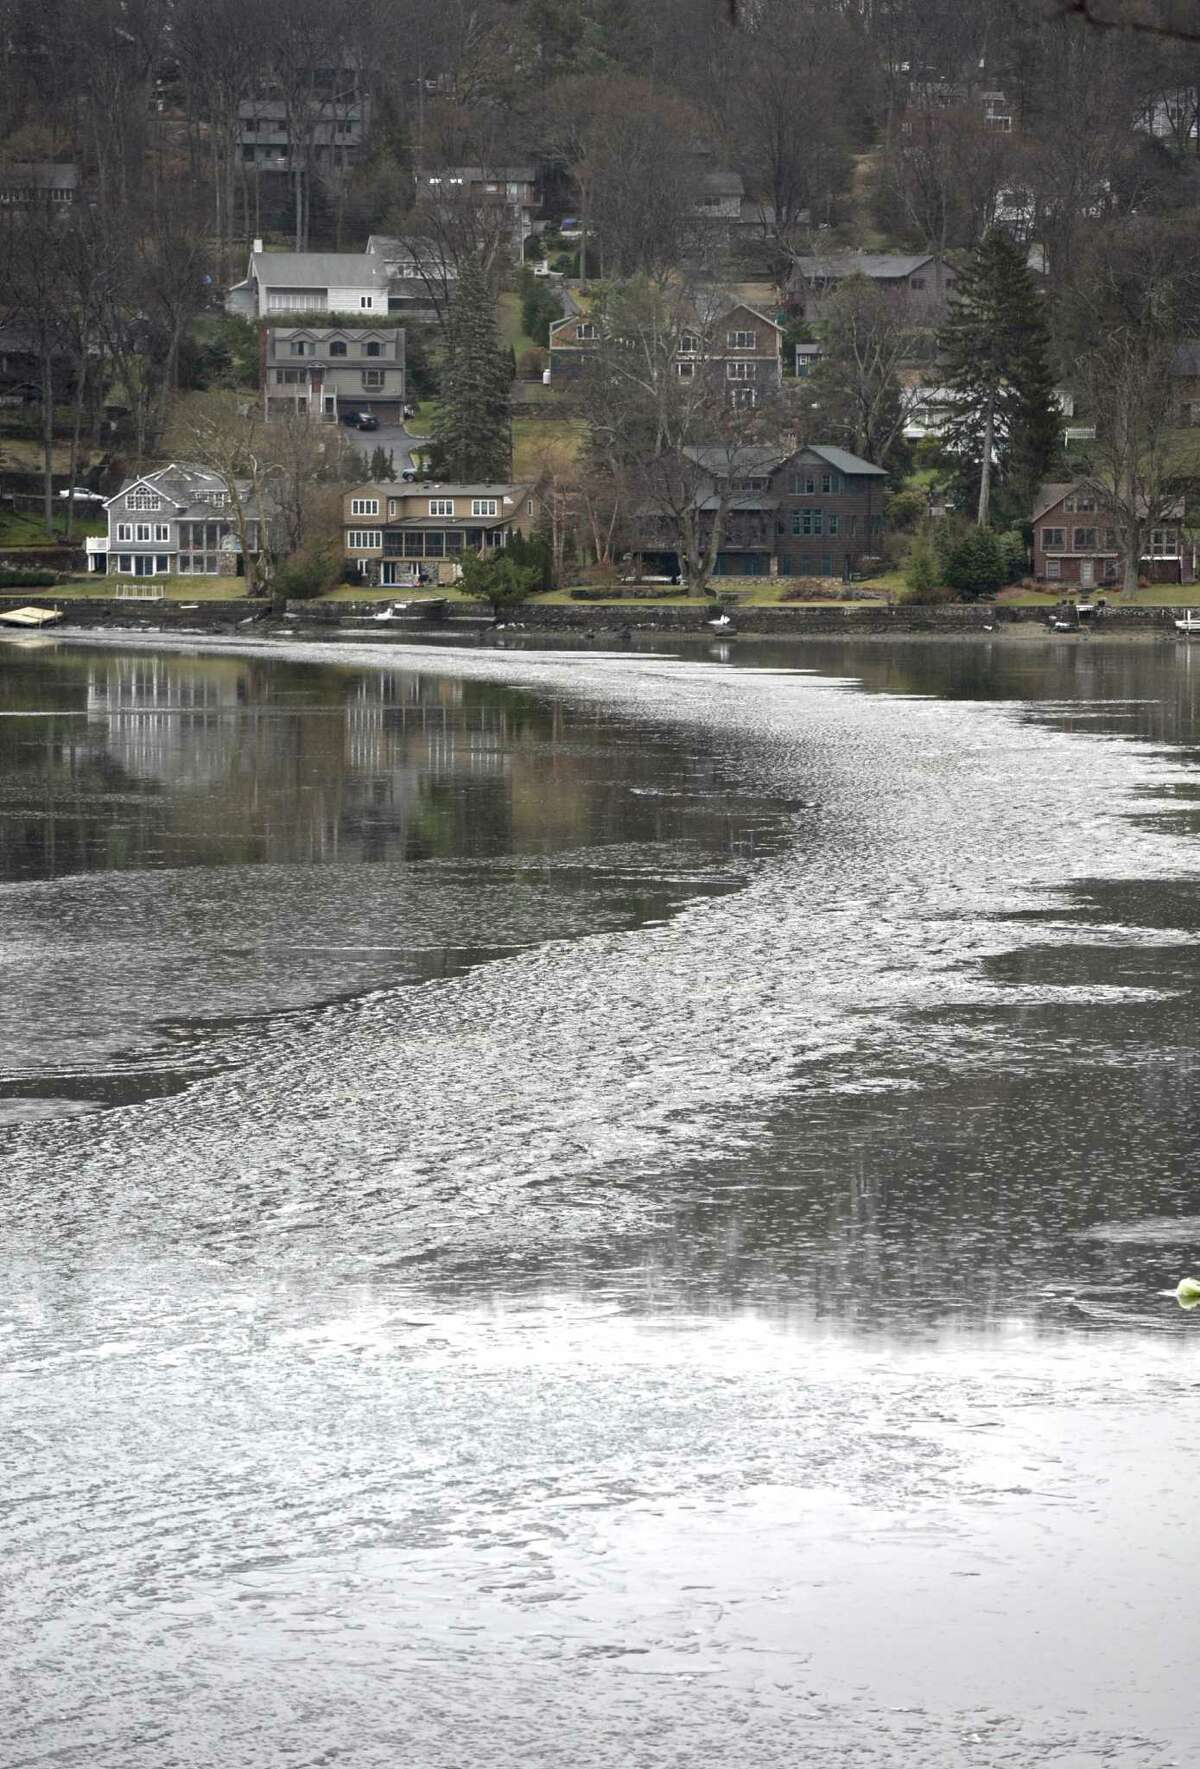 Ice forms later, and melts earlier, than it once did on bodies of water such as Candlewood Lake, evidence that freshwater lakes are warming because of climate change.